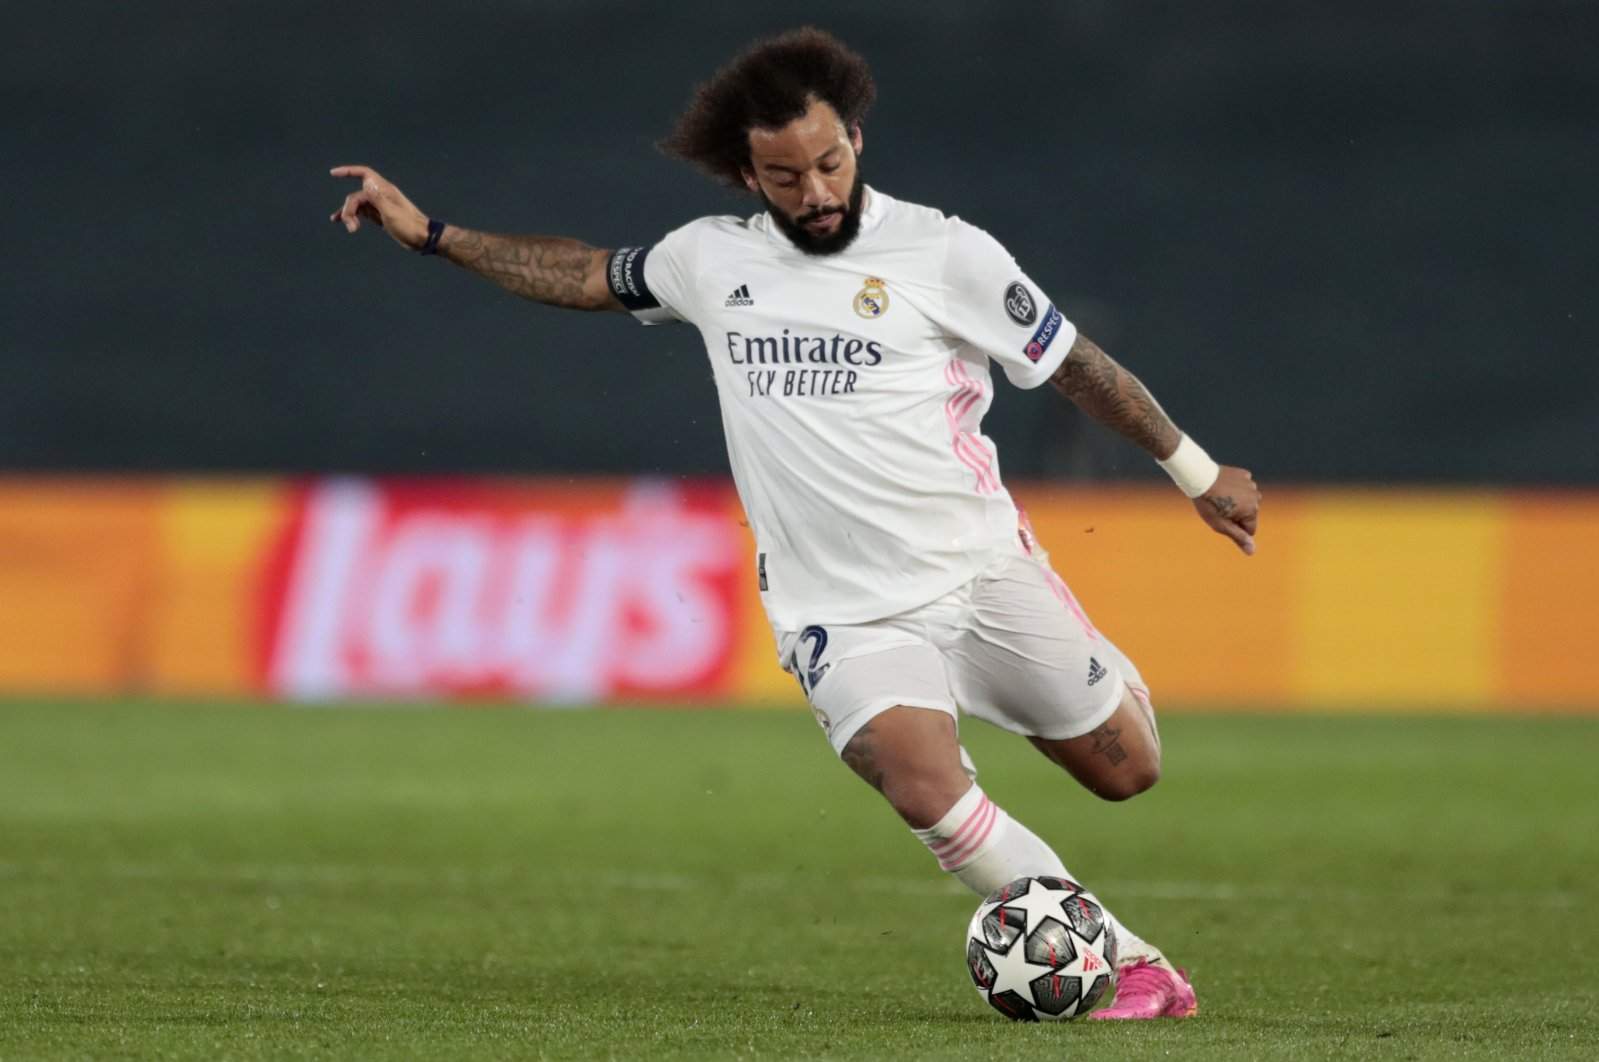 Real Madrid's Marcelo takes a shot during the Champions League semifinal first leg soccer match between Real Madrid and Chelsea at the Alfredo di Stefano stadium in Madrid, Spain, April 27, 2021. (AP Photo)